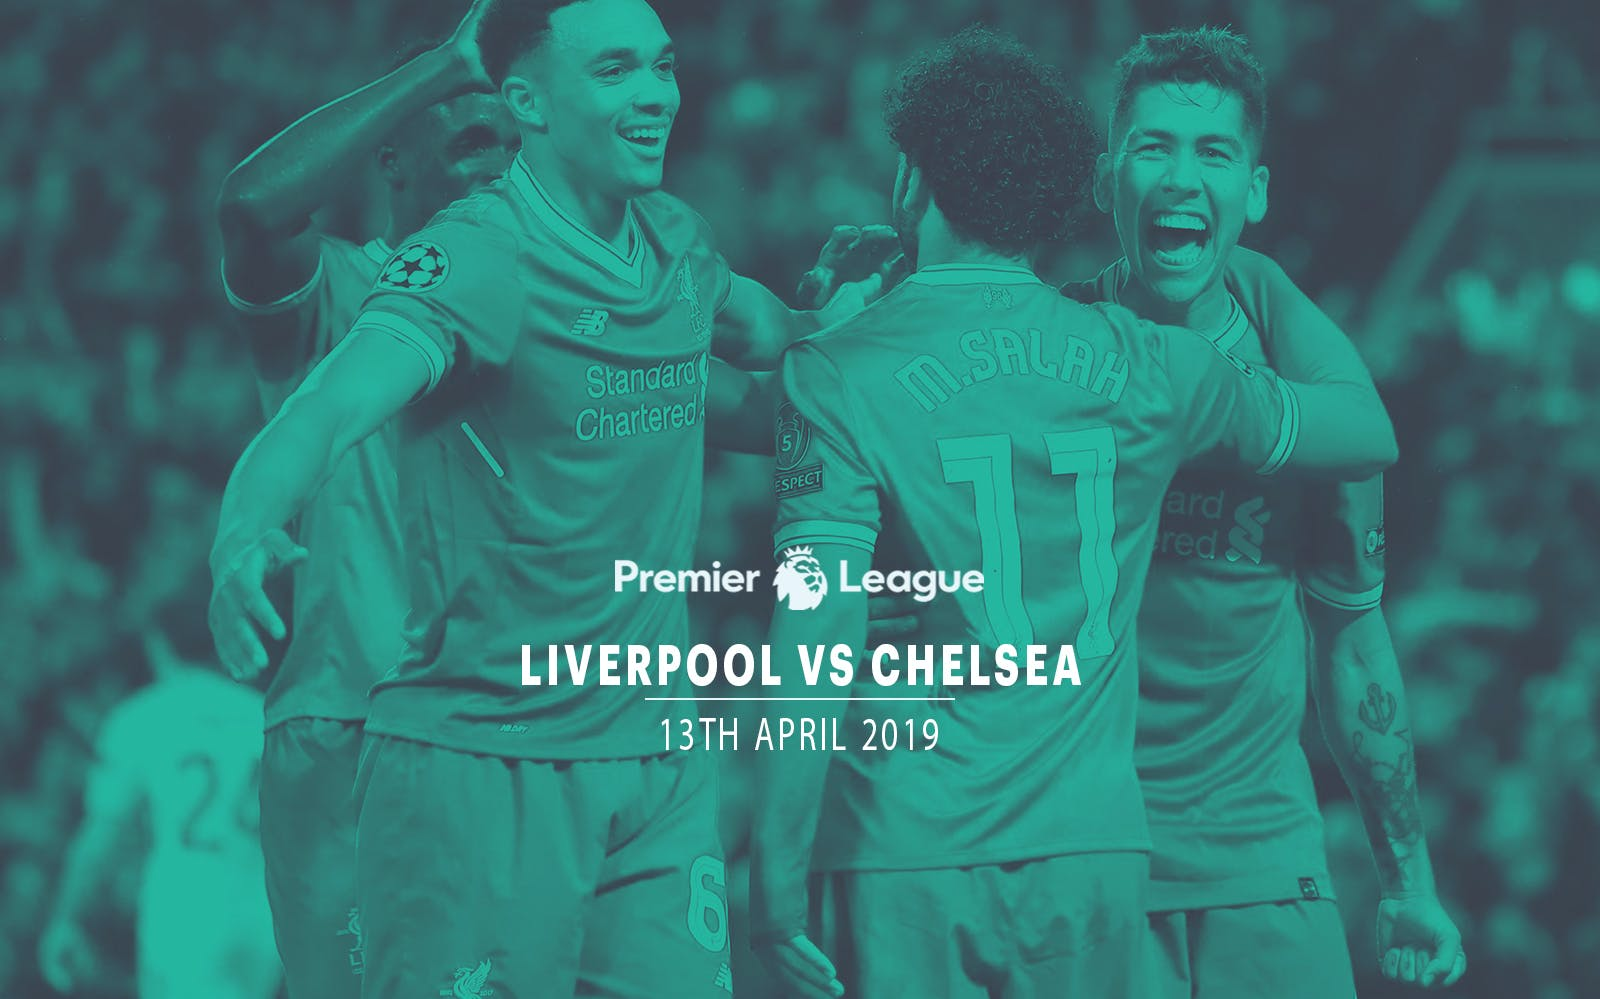 Liverpool vs Chelsea - 13th Apr'19